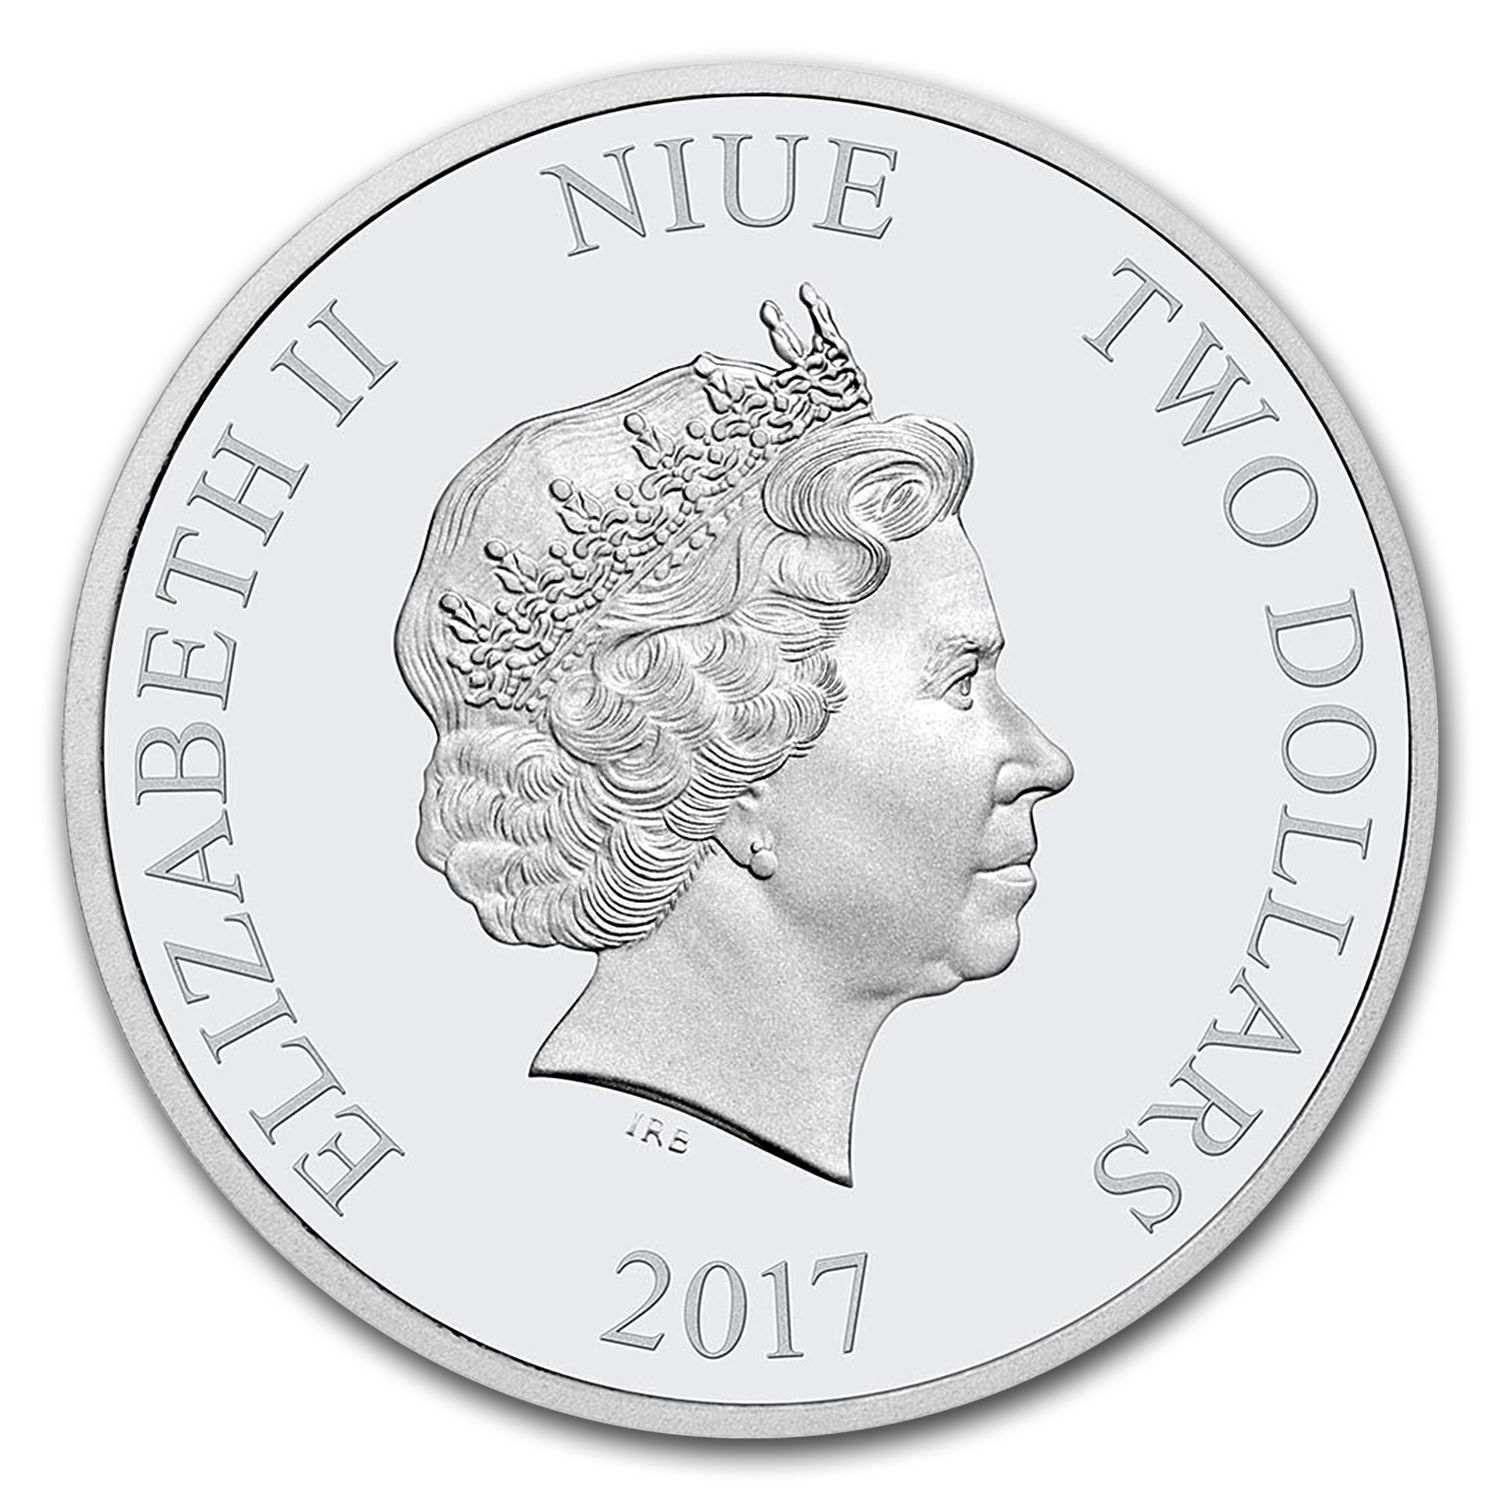 2017 Niue 1 oz Silver $2 Disney Love Coin (Colorized)